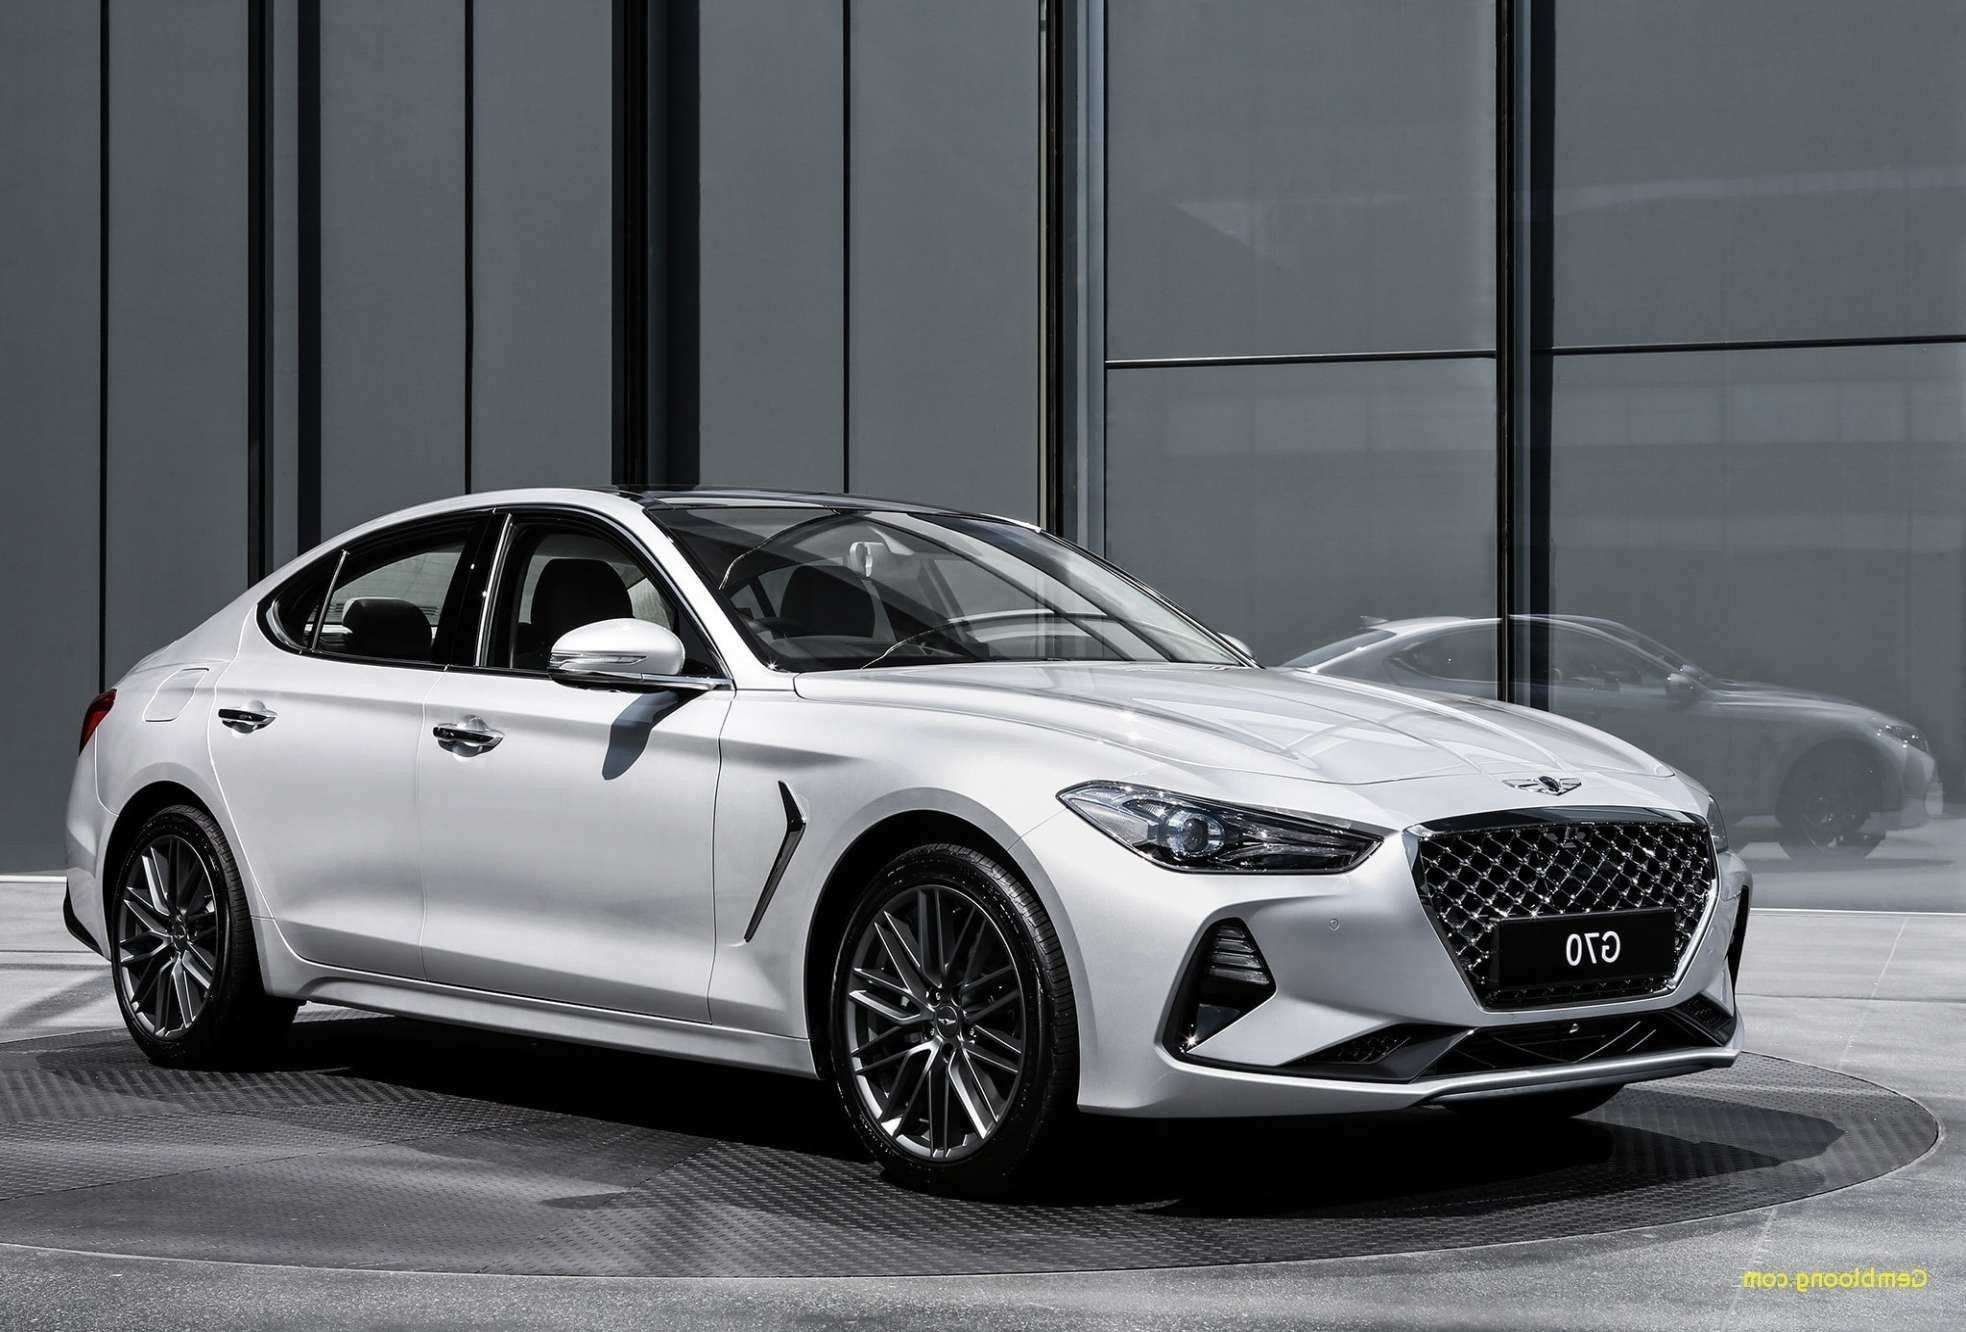 42 All New 2020 Hyundai Genesis Coupe V8 First Drive